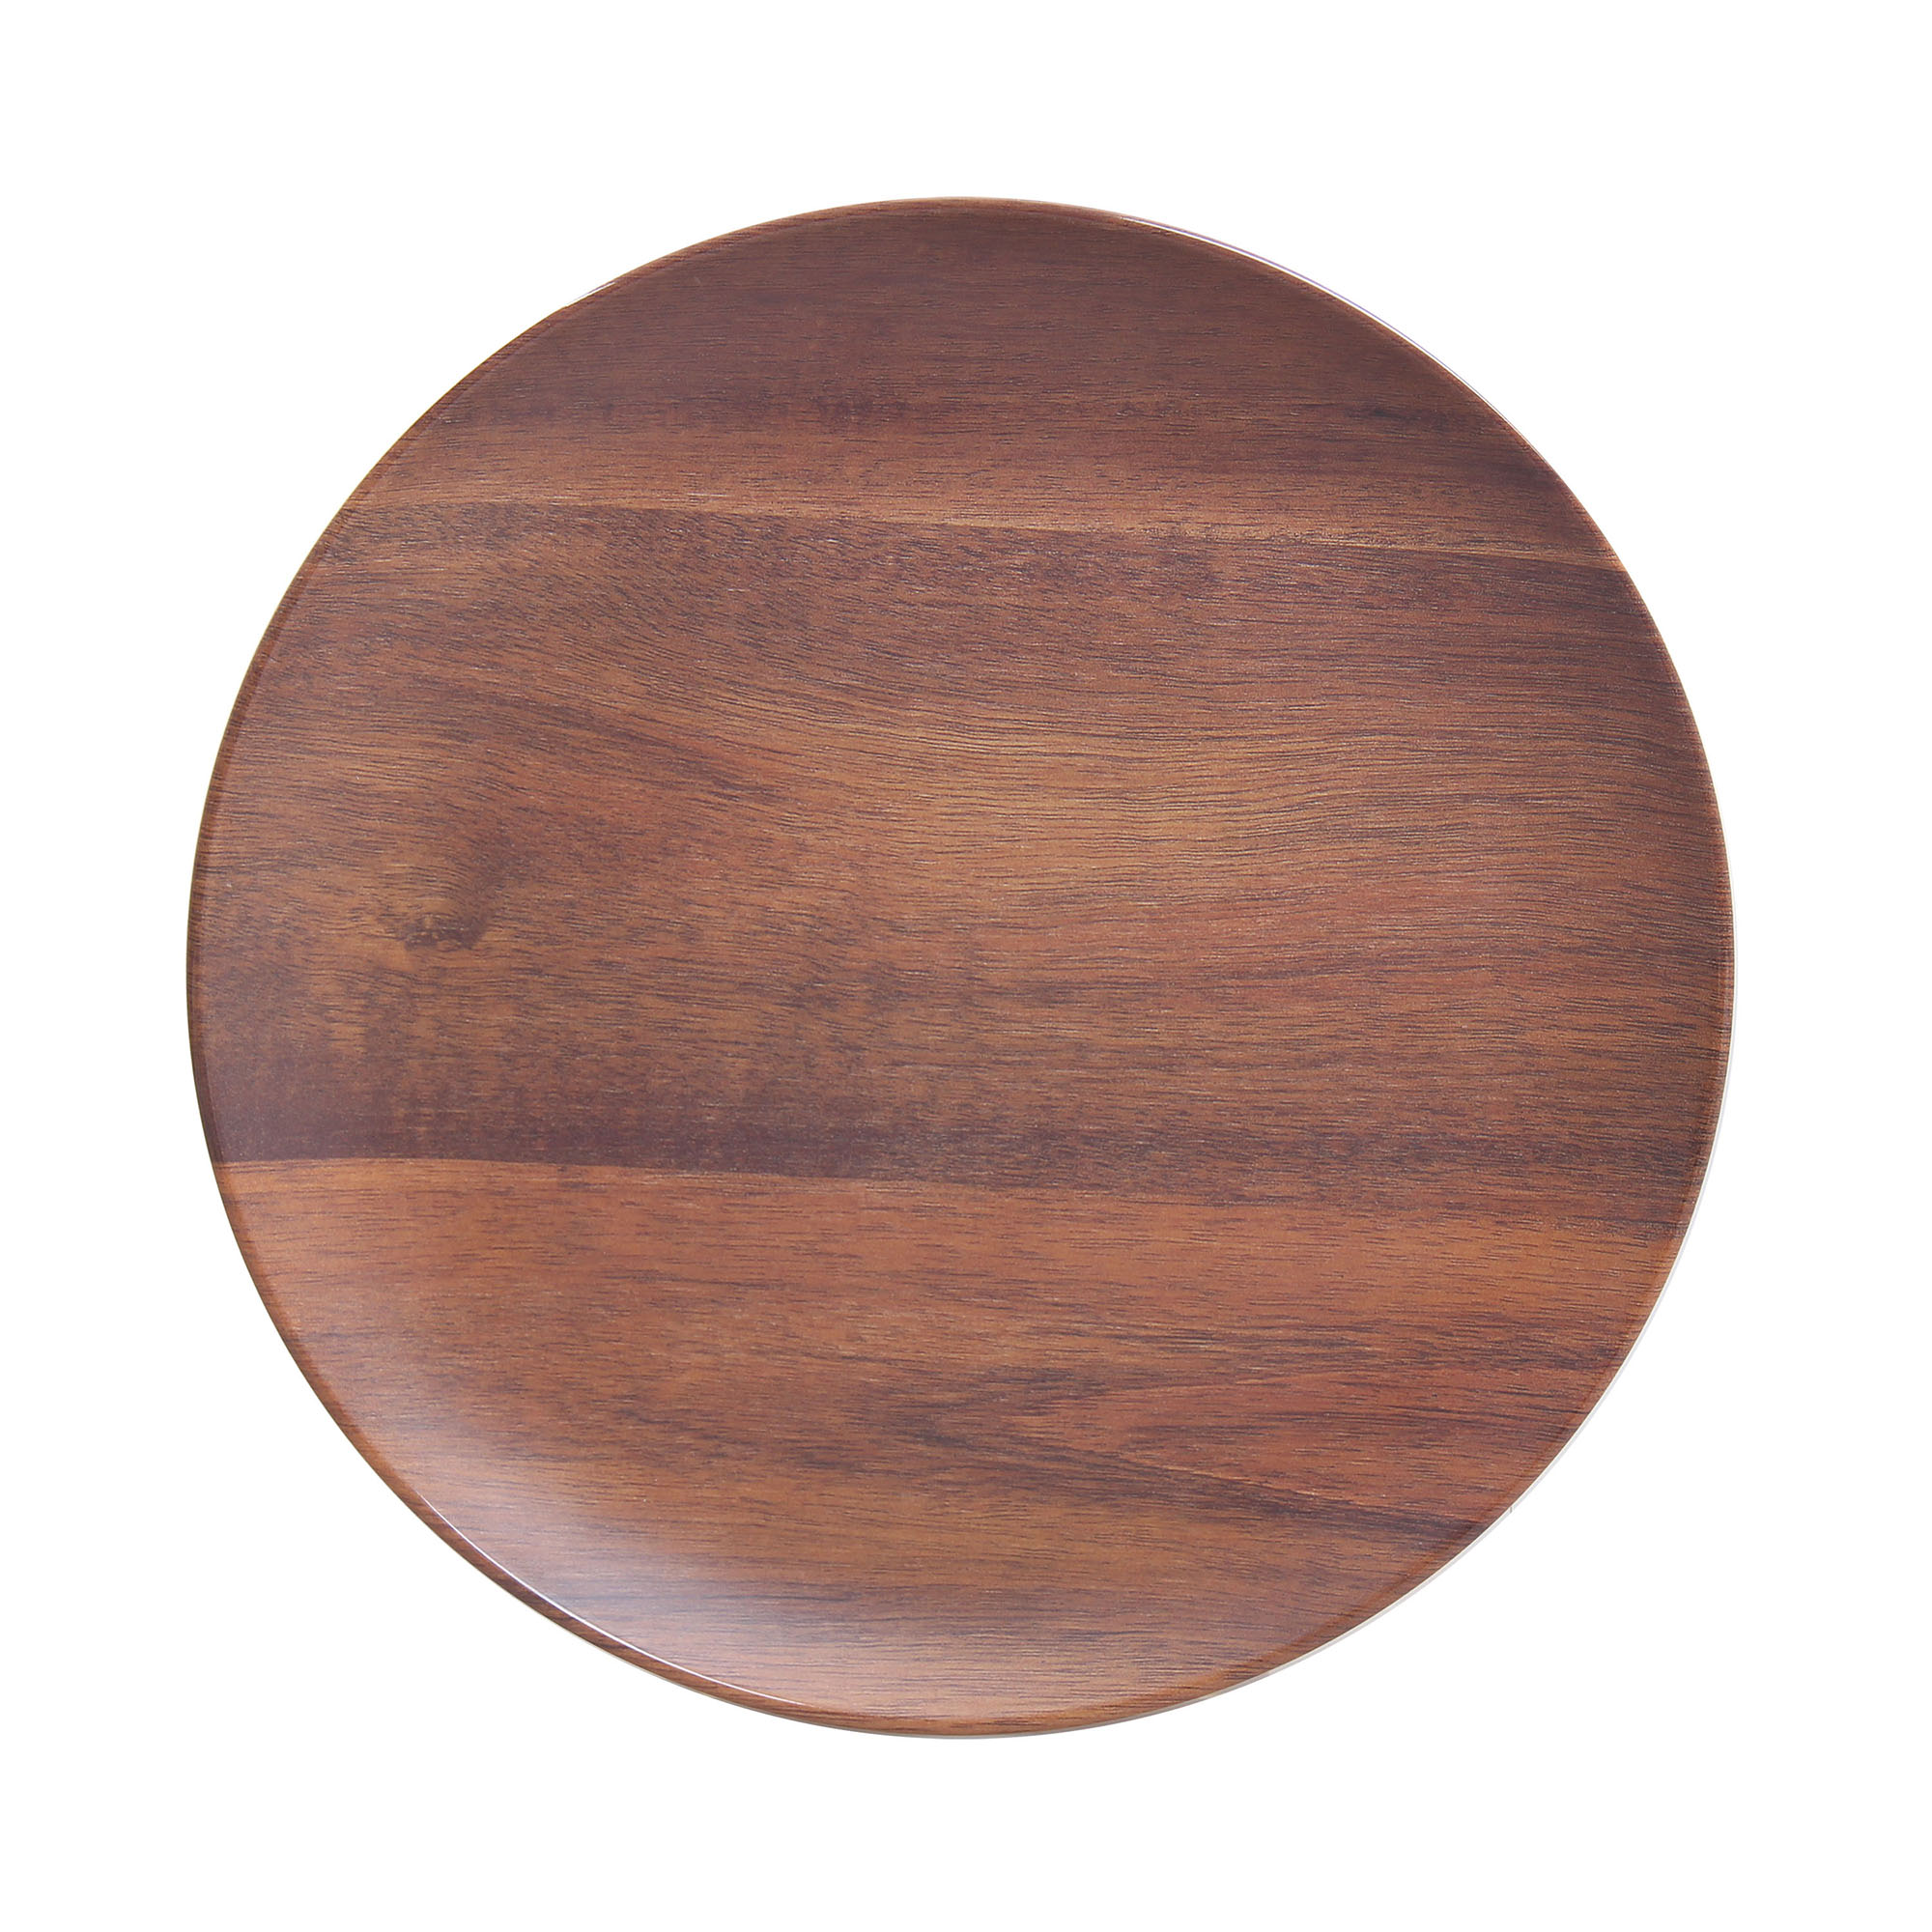 Better Homes & Gardens Acacia Melamine Salad Plate